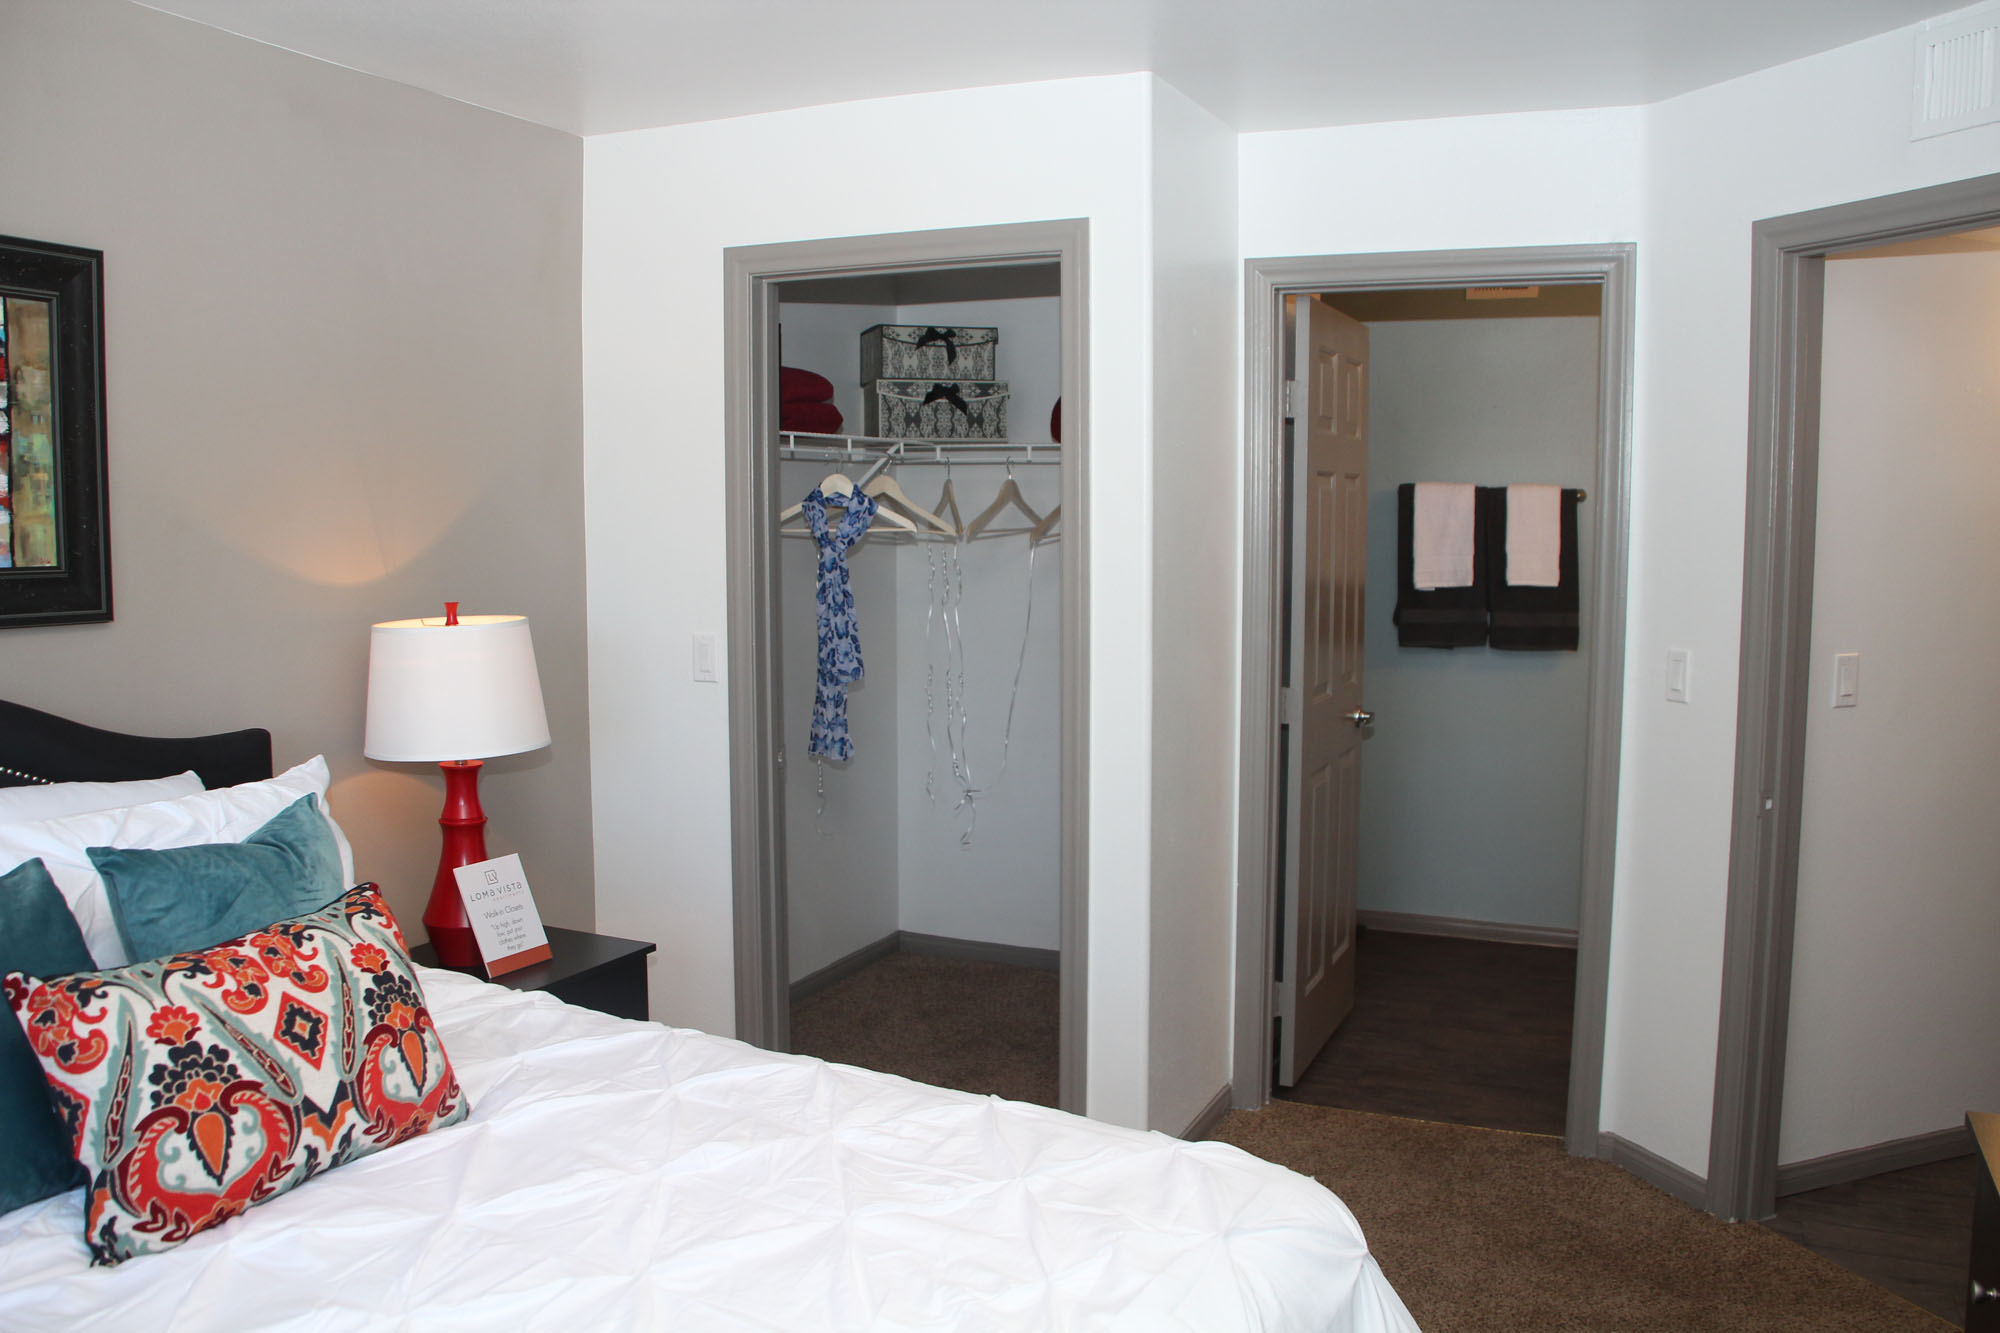 Loma vista apartments north las vegas see reviews - One bedroom apartments north las vegas ...